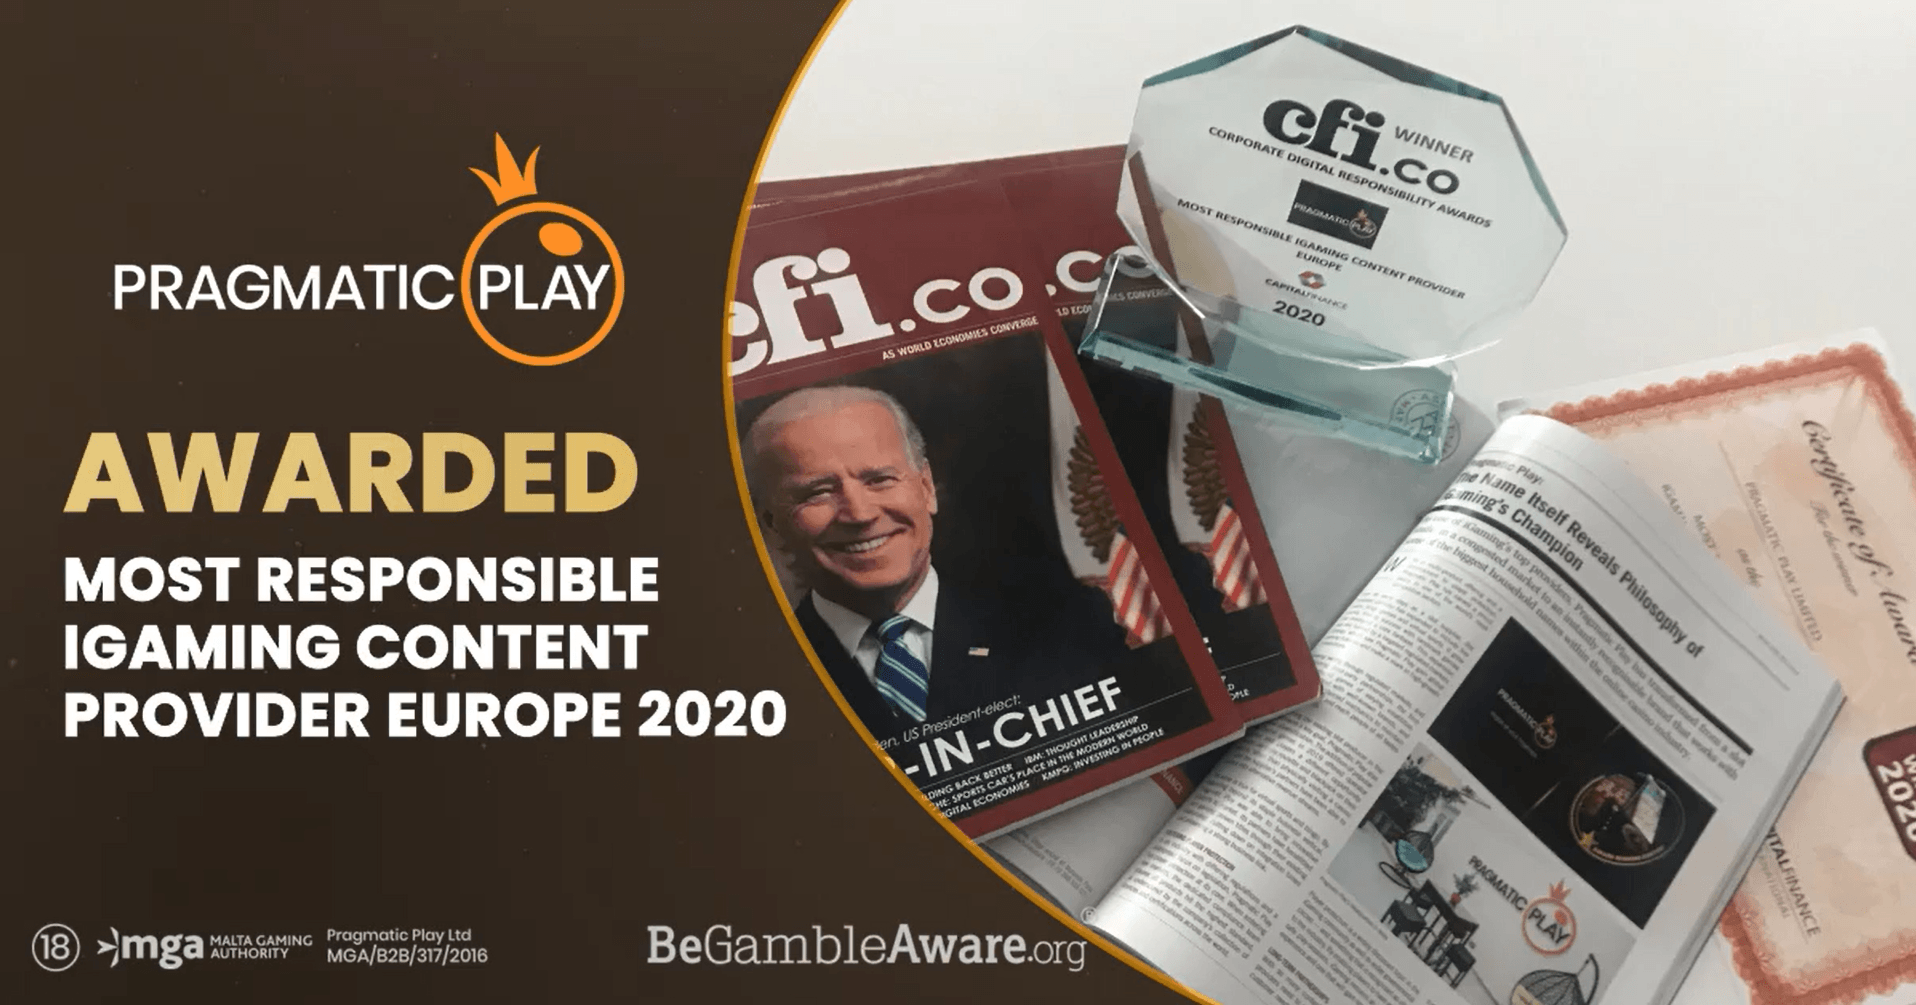 CFI Magazine Awards 2021 - Pragmatic Play